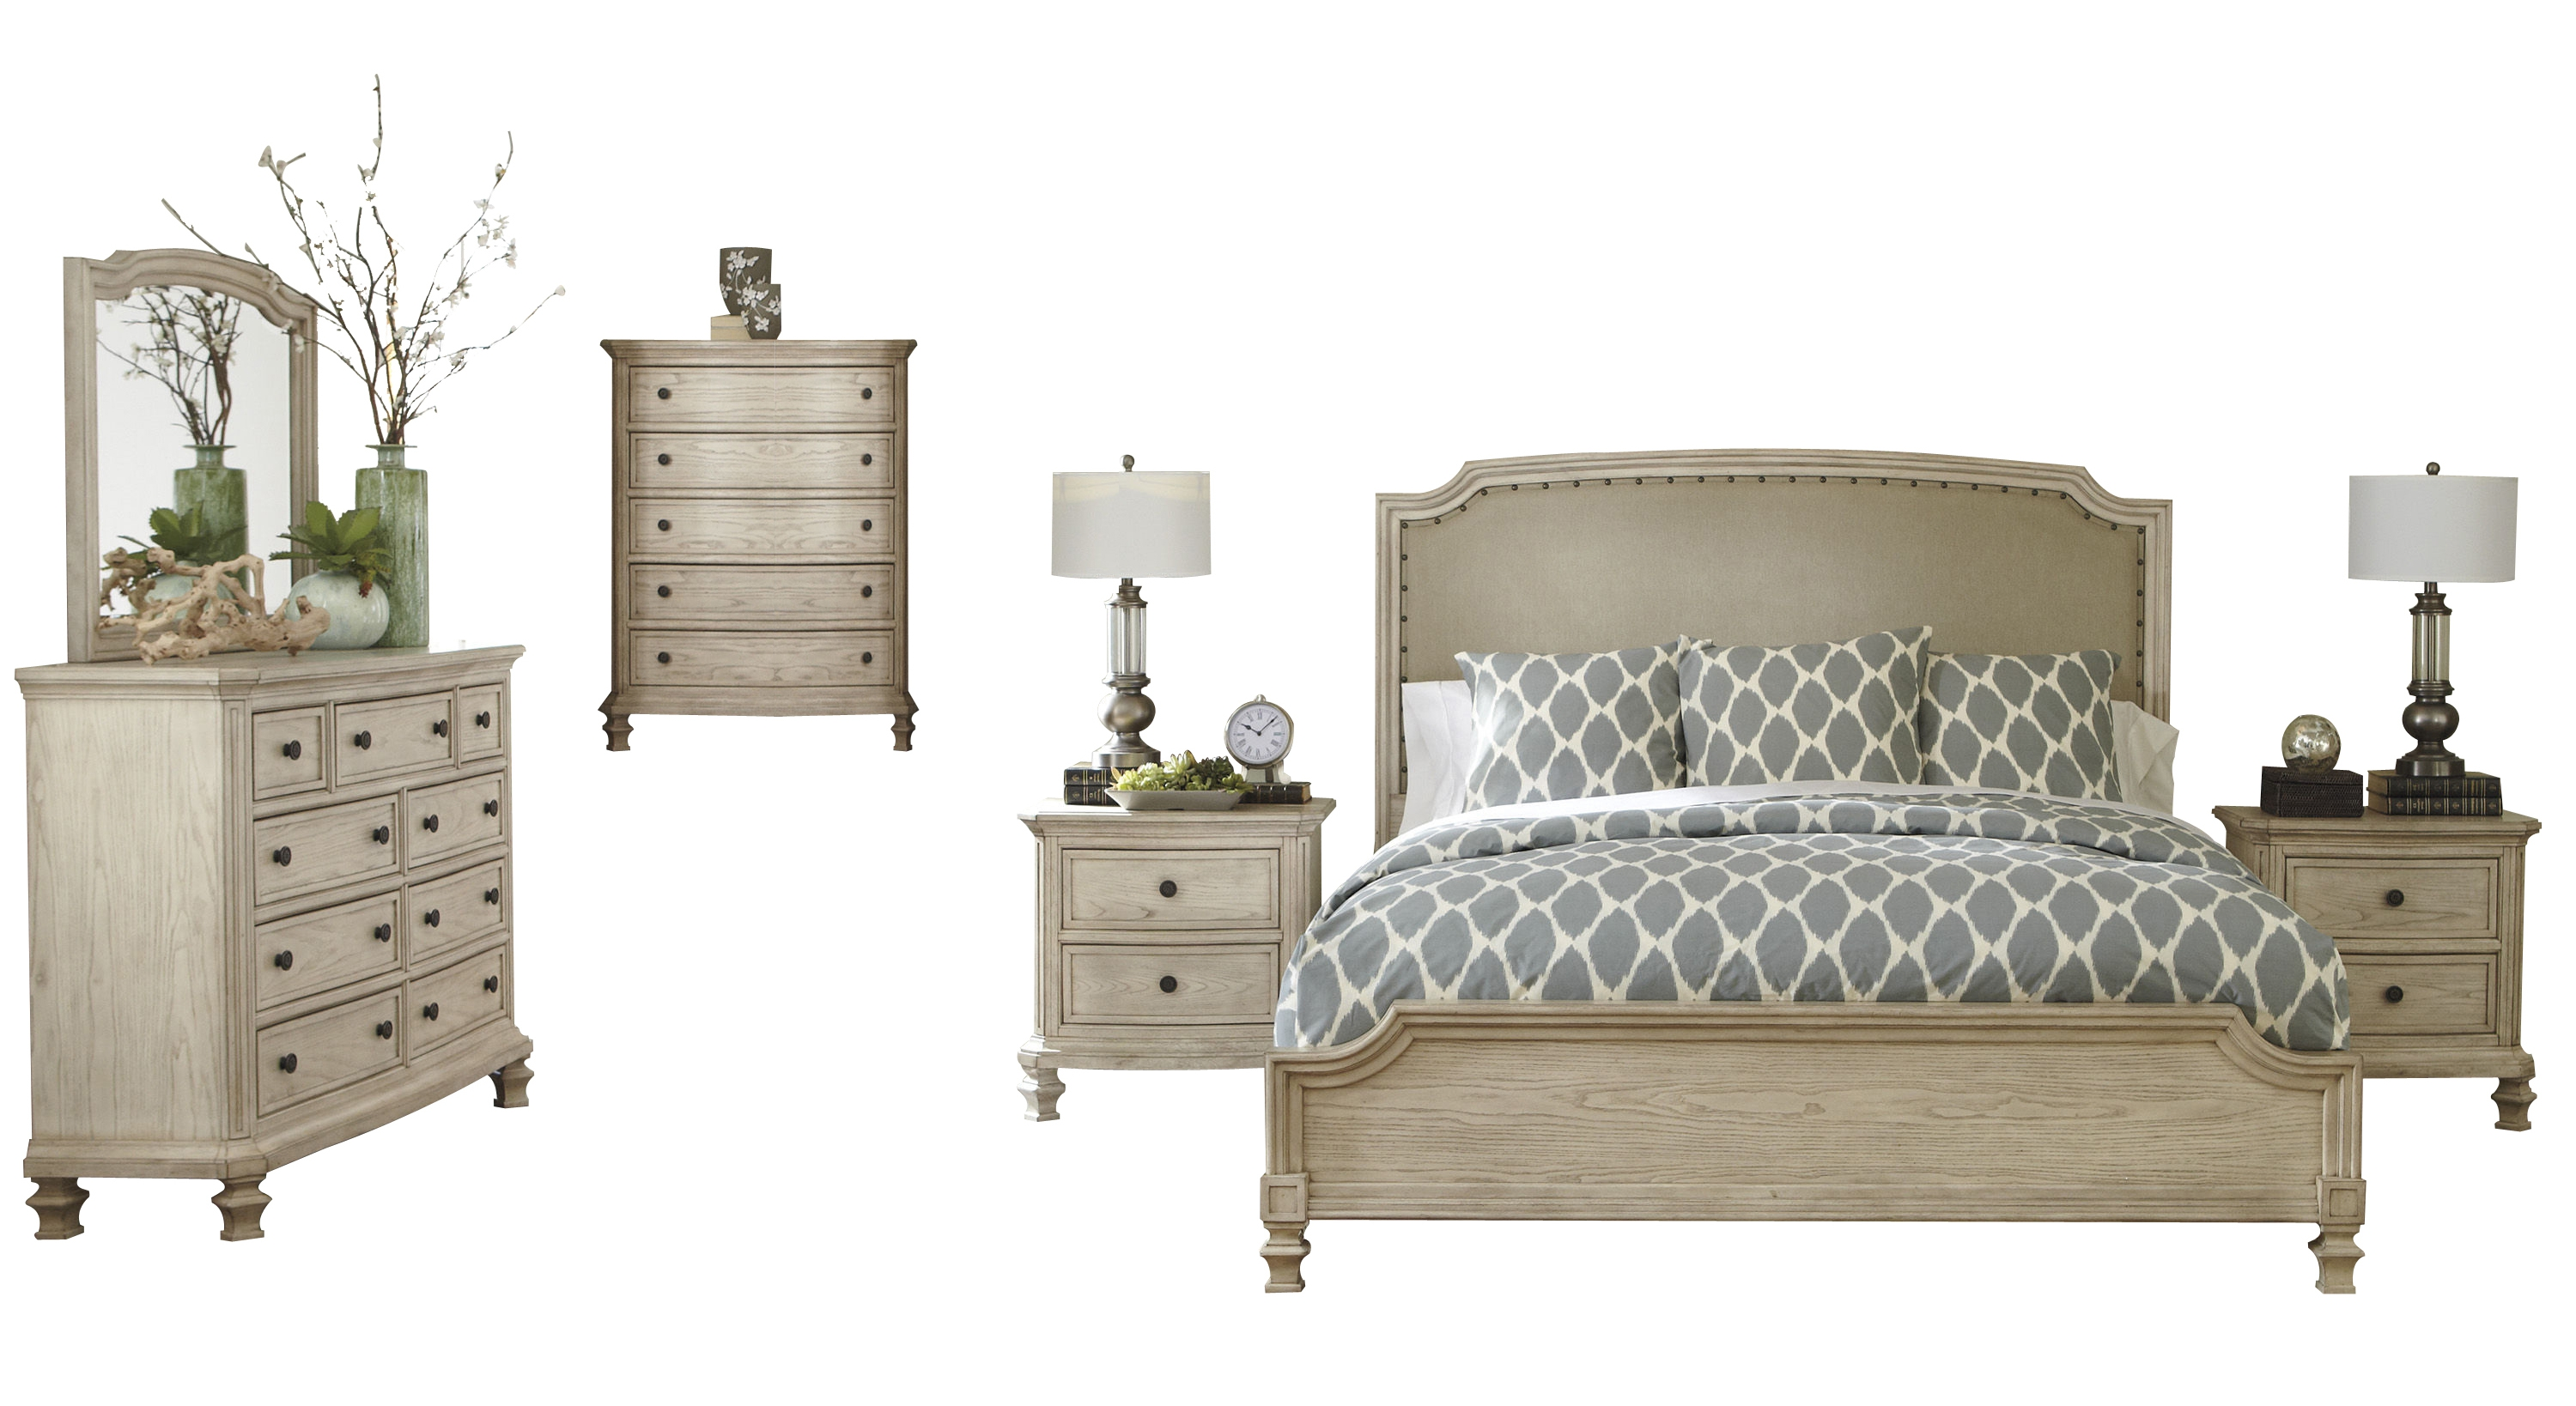 Demarlos Parchment White Wood Master Bedroom Set Bedrooms The Classy Home Best Deal Furniture